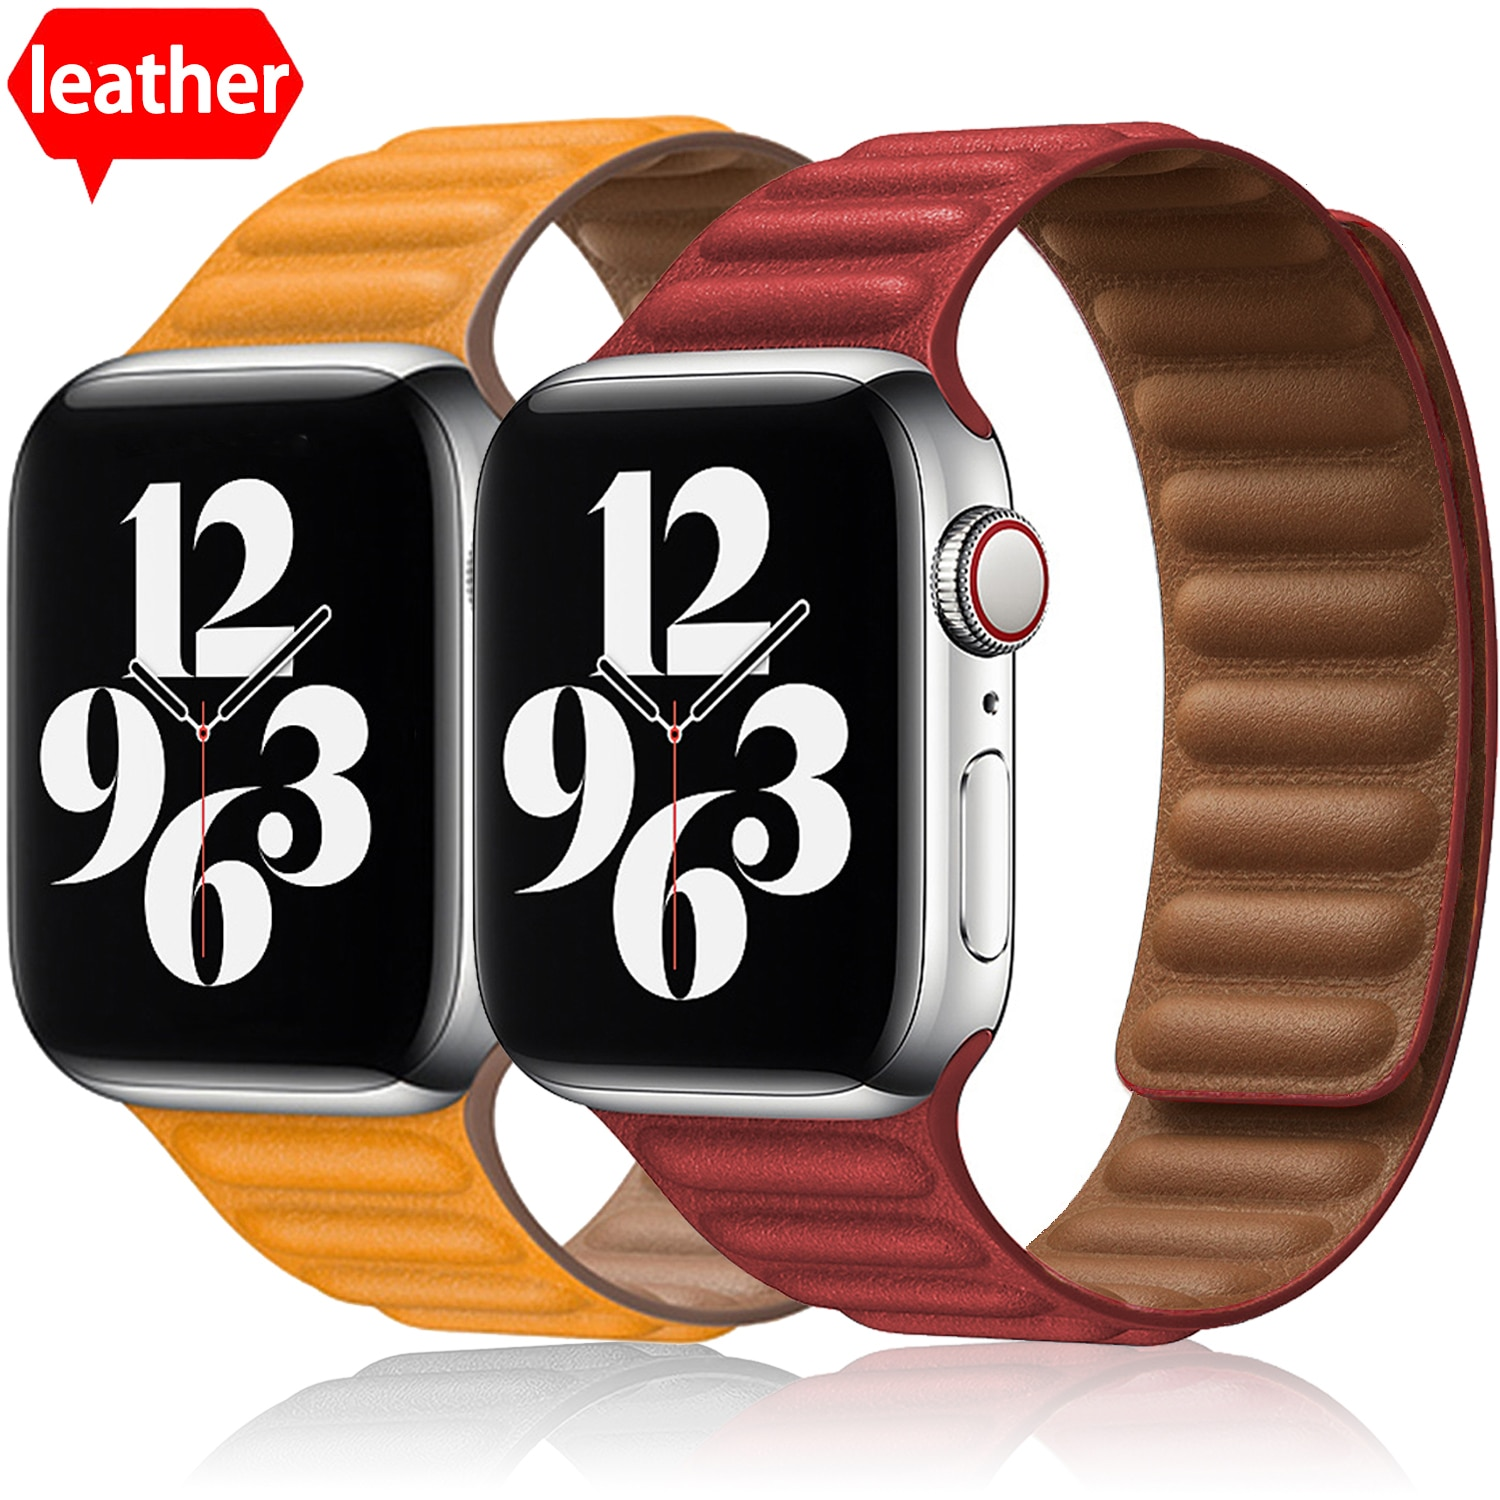 leather loop for apple watch band 44mm 40mm iwatch band 38mm 42mm magnetic watch bracelet for apple watch strap series 3 4 5 6 2 New Leather Link Watch Strap for Apple Watch Band  42mm 38mm 44mm 40mm Loop Bracelet for IWatch Series 6 5 4 3 Band Accessories